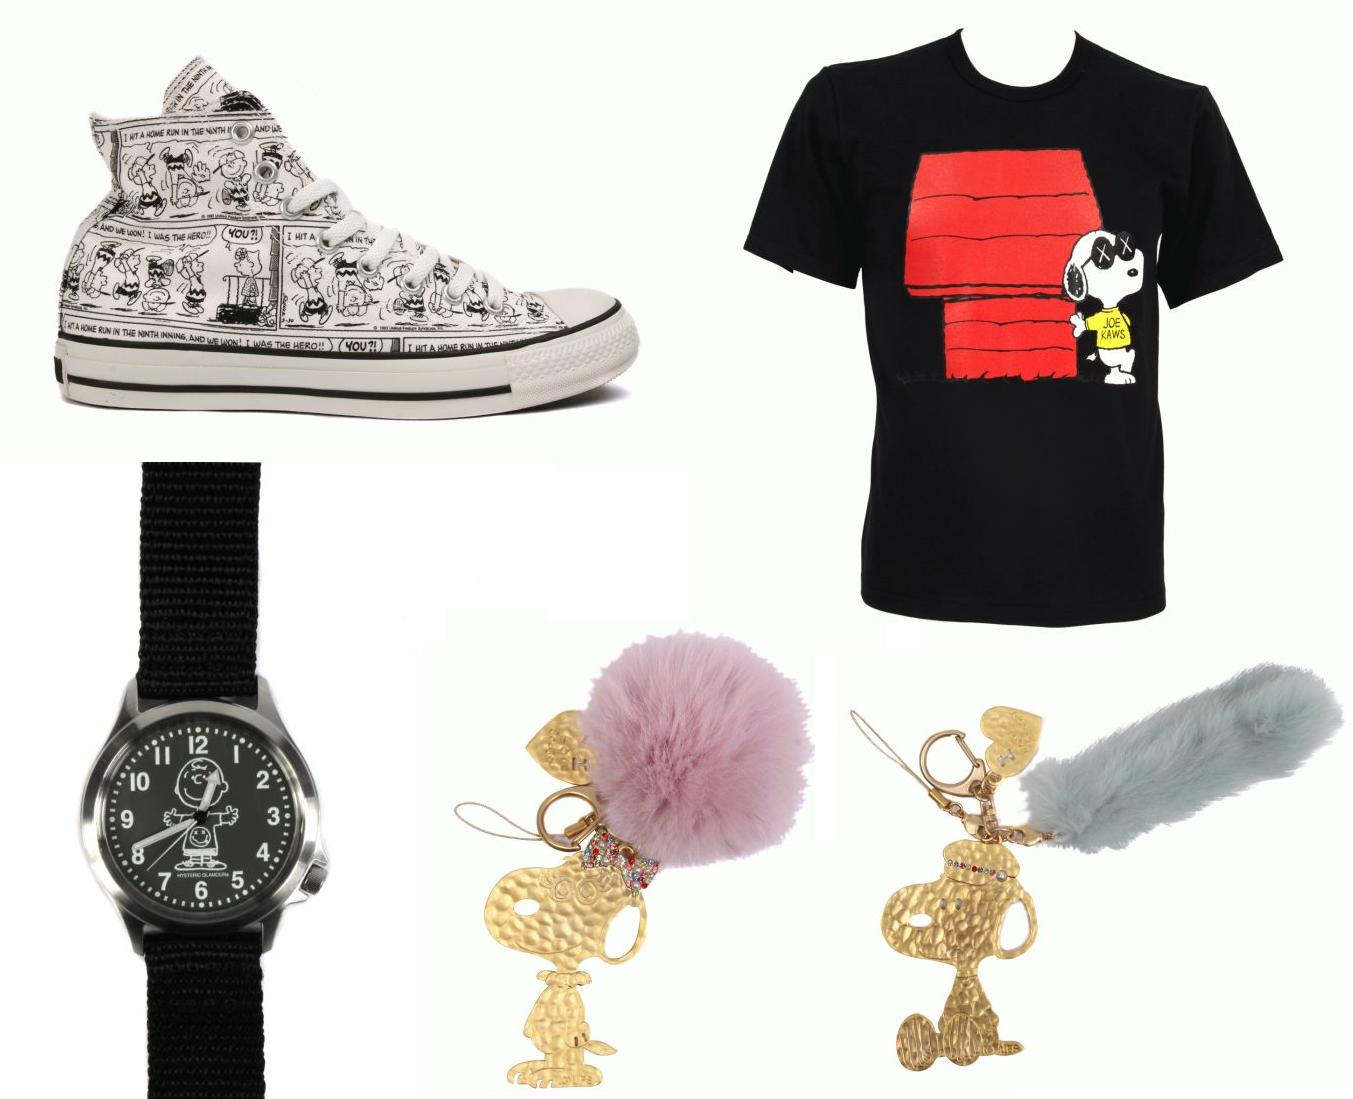 c25d8eb6d9 The Blot Says...  Peanuts 60th Anniversary Clothing   Accessory ...